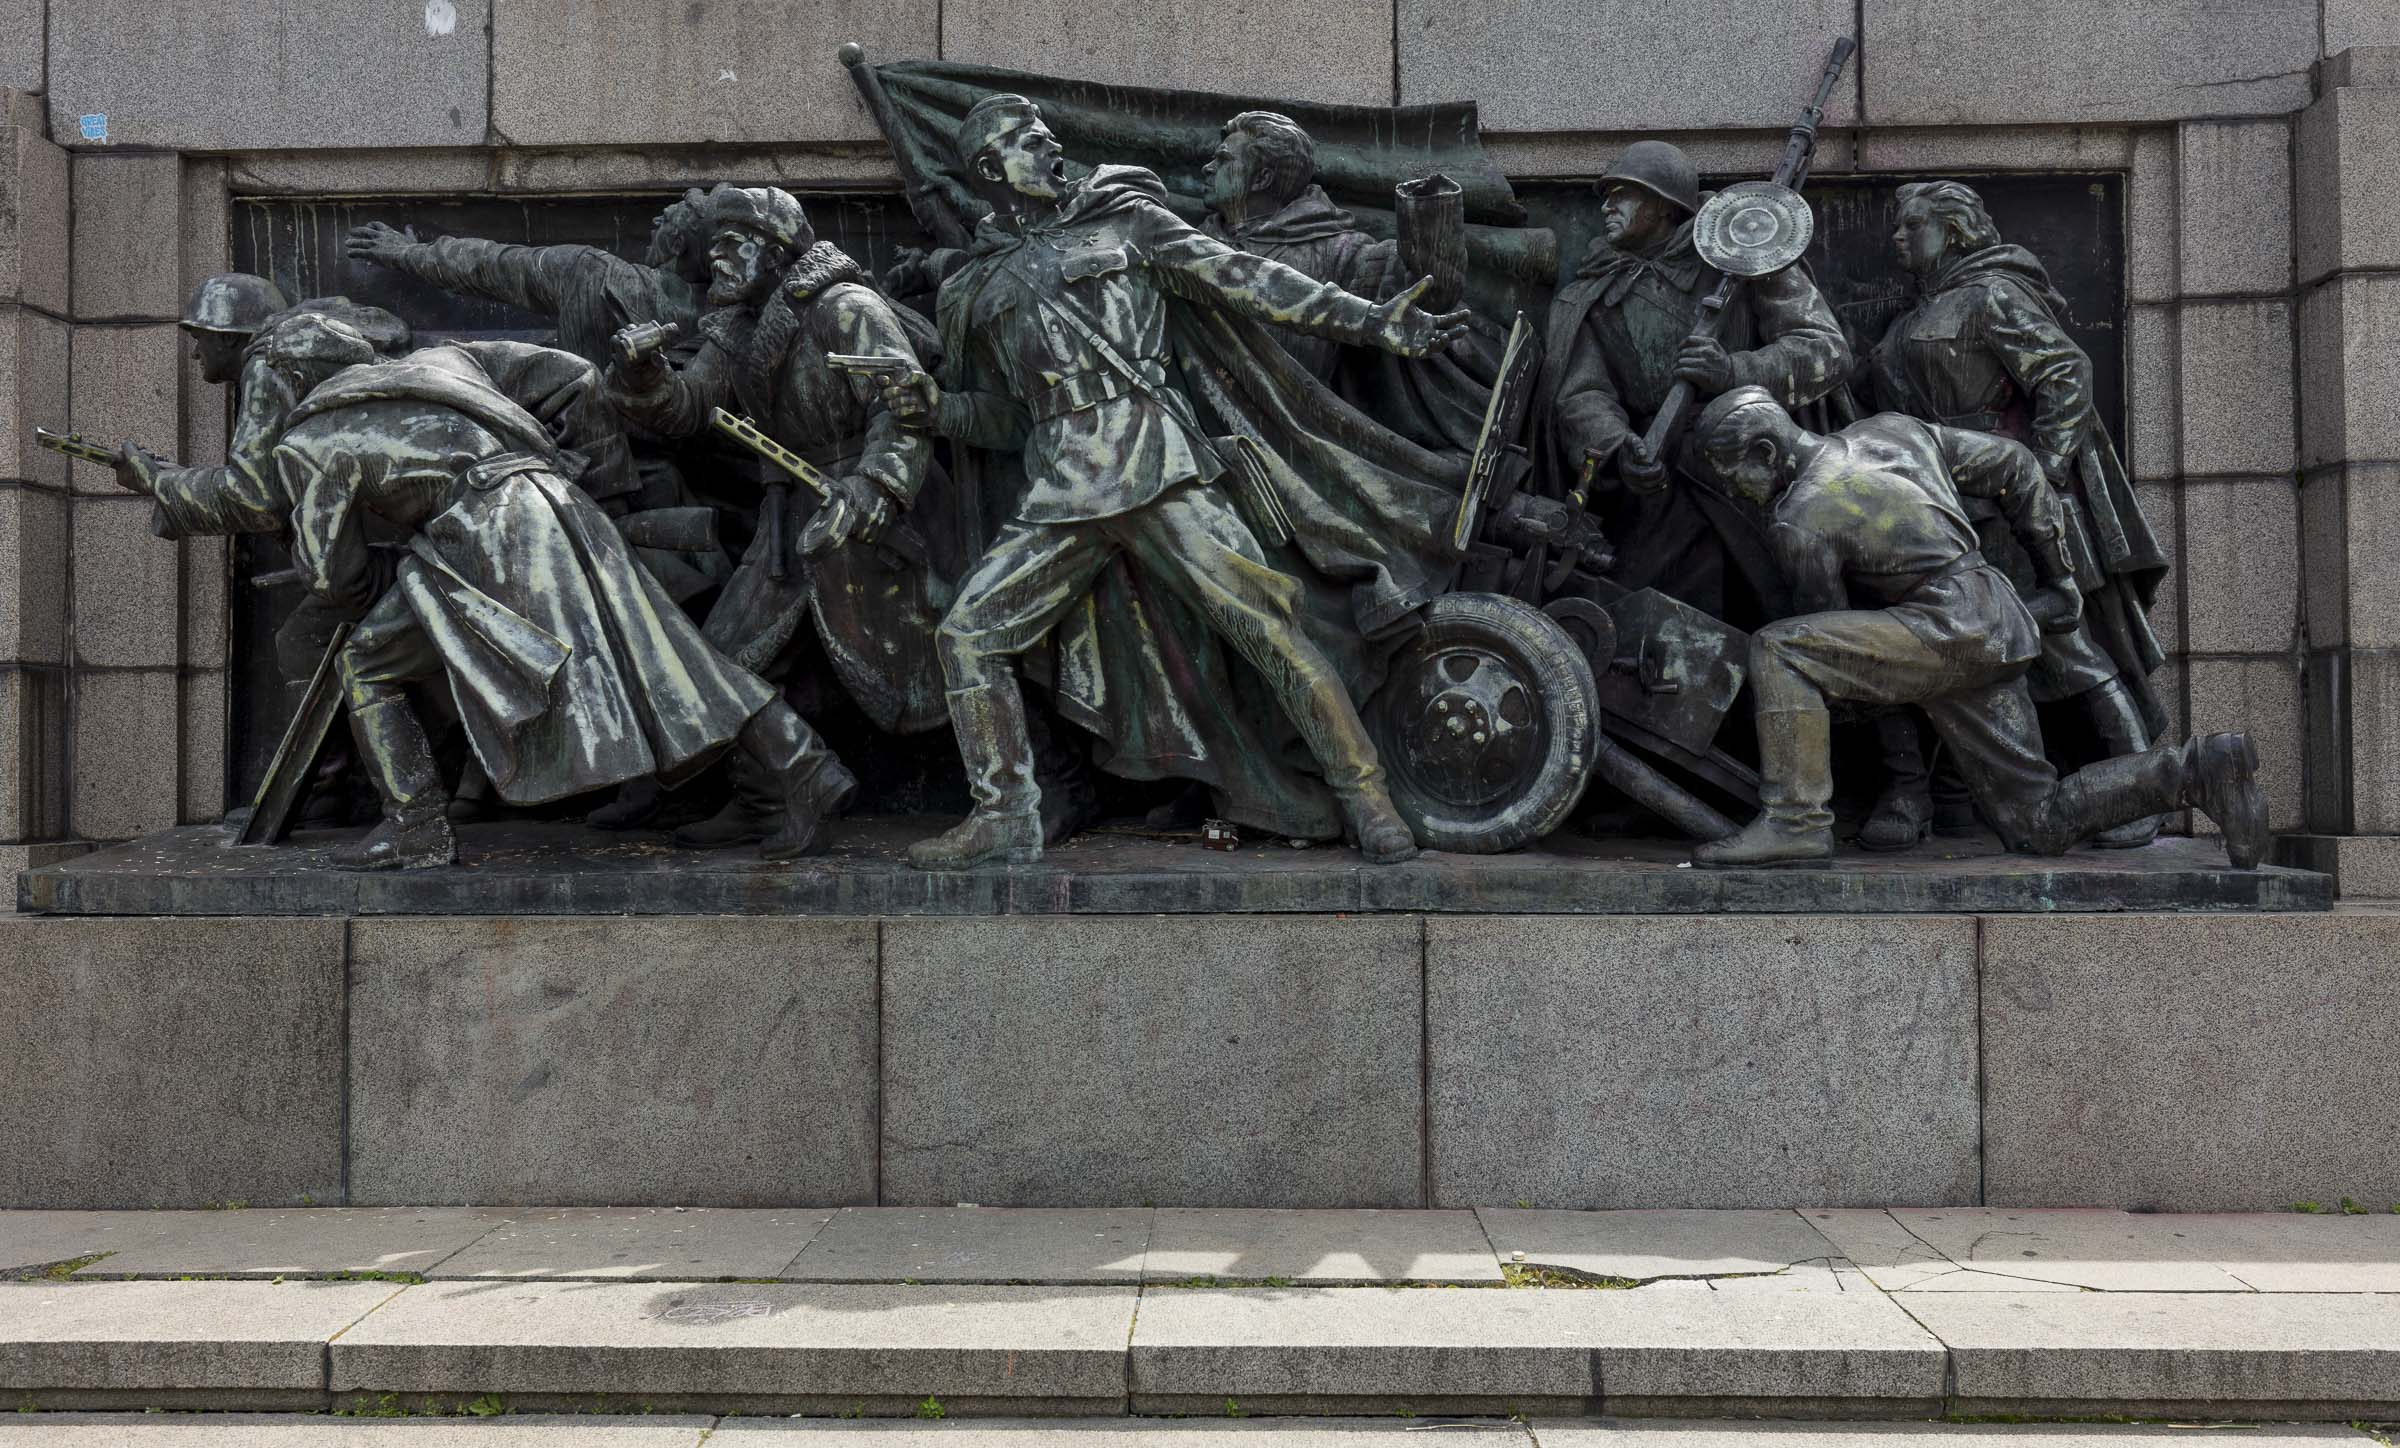 william-short-photography-sofia-monument-to-the-soviet-army-081.JPG